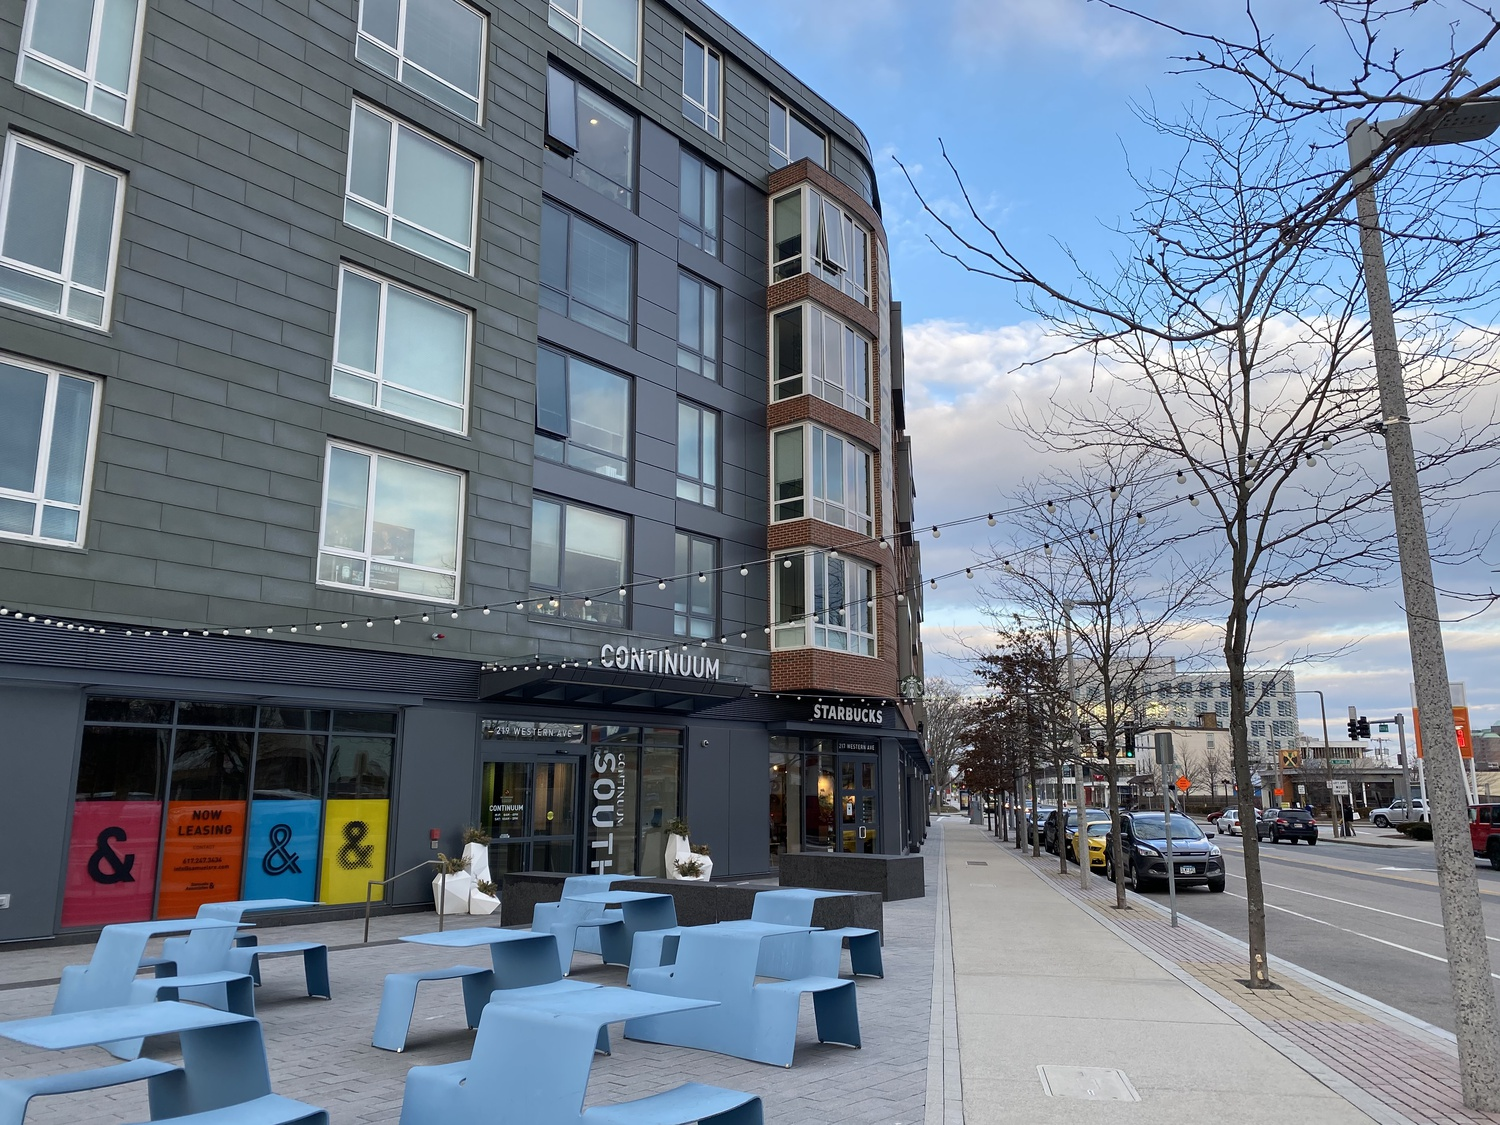 Continuum is an apartment and retail development located at Barry's Corner.